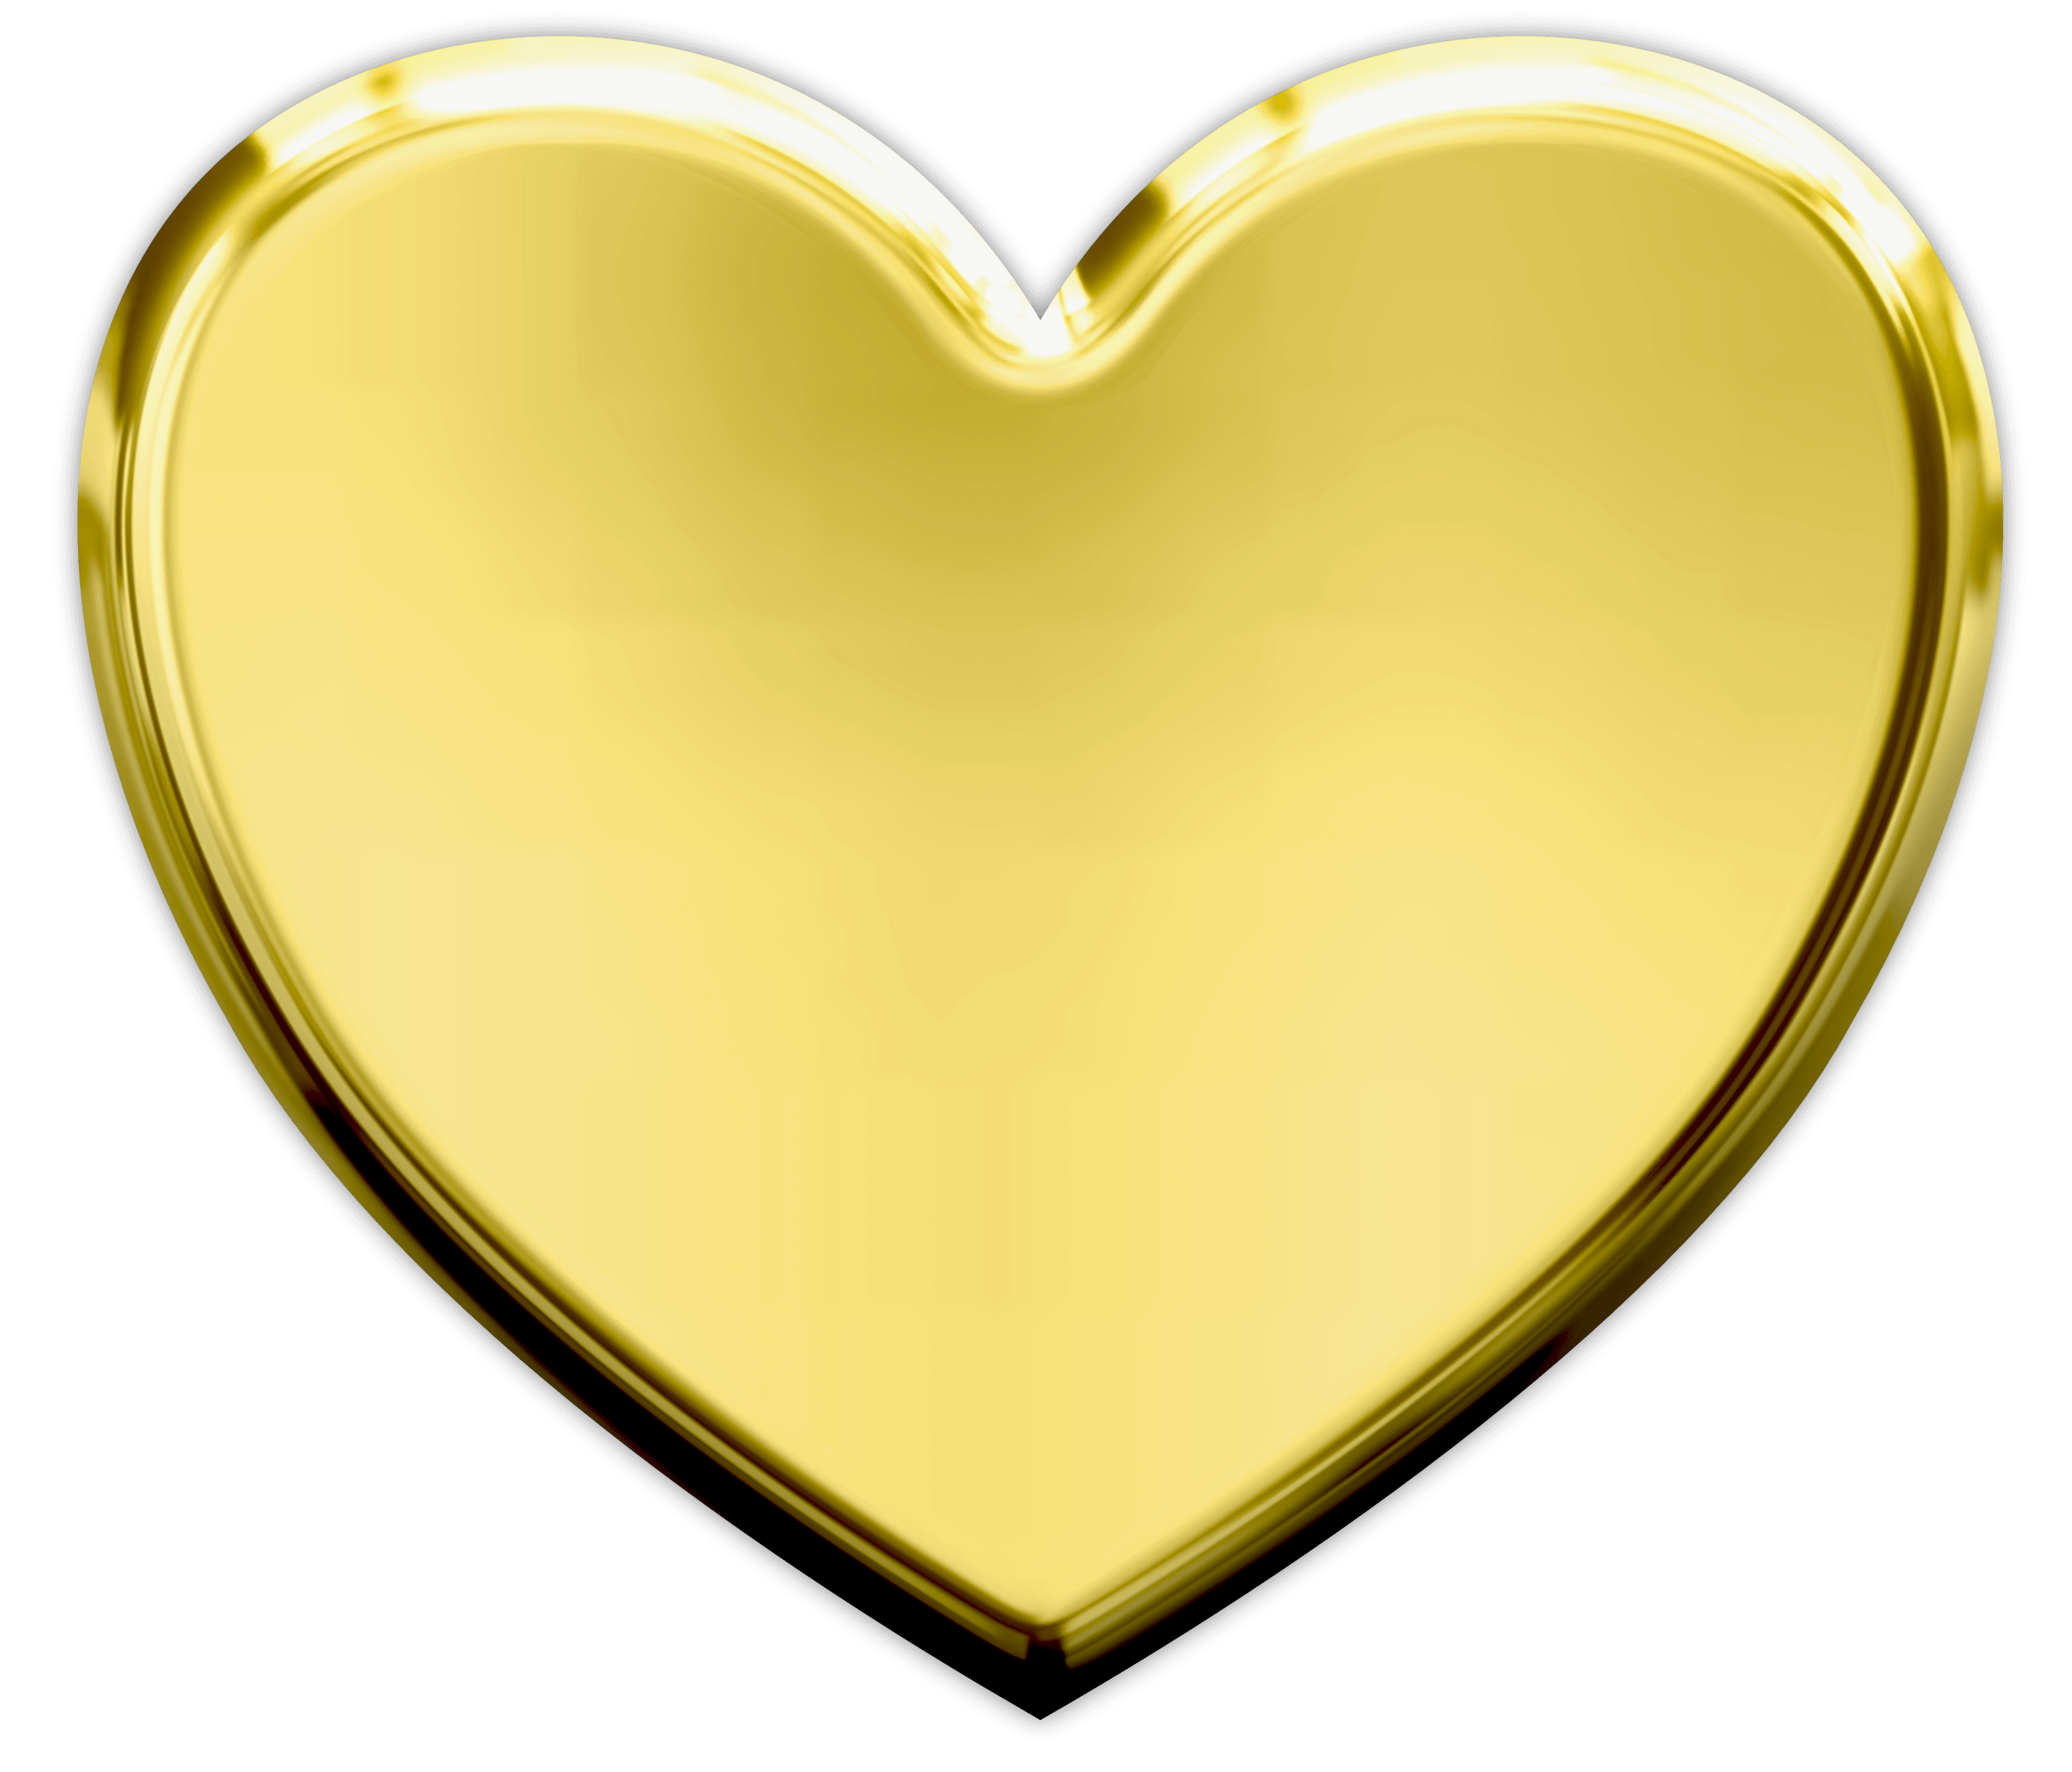 Gold Heart PNG Transparent Image